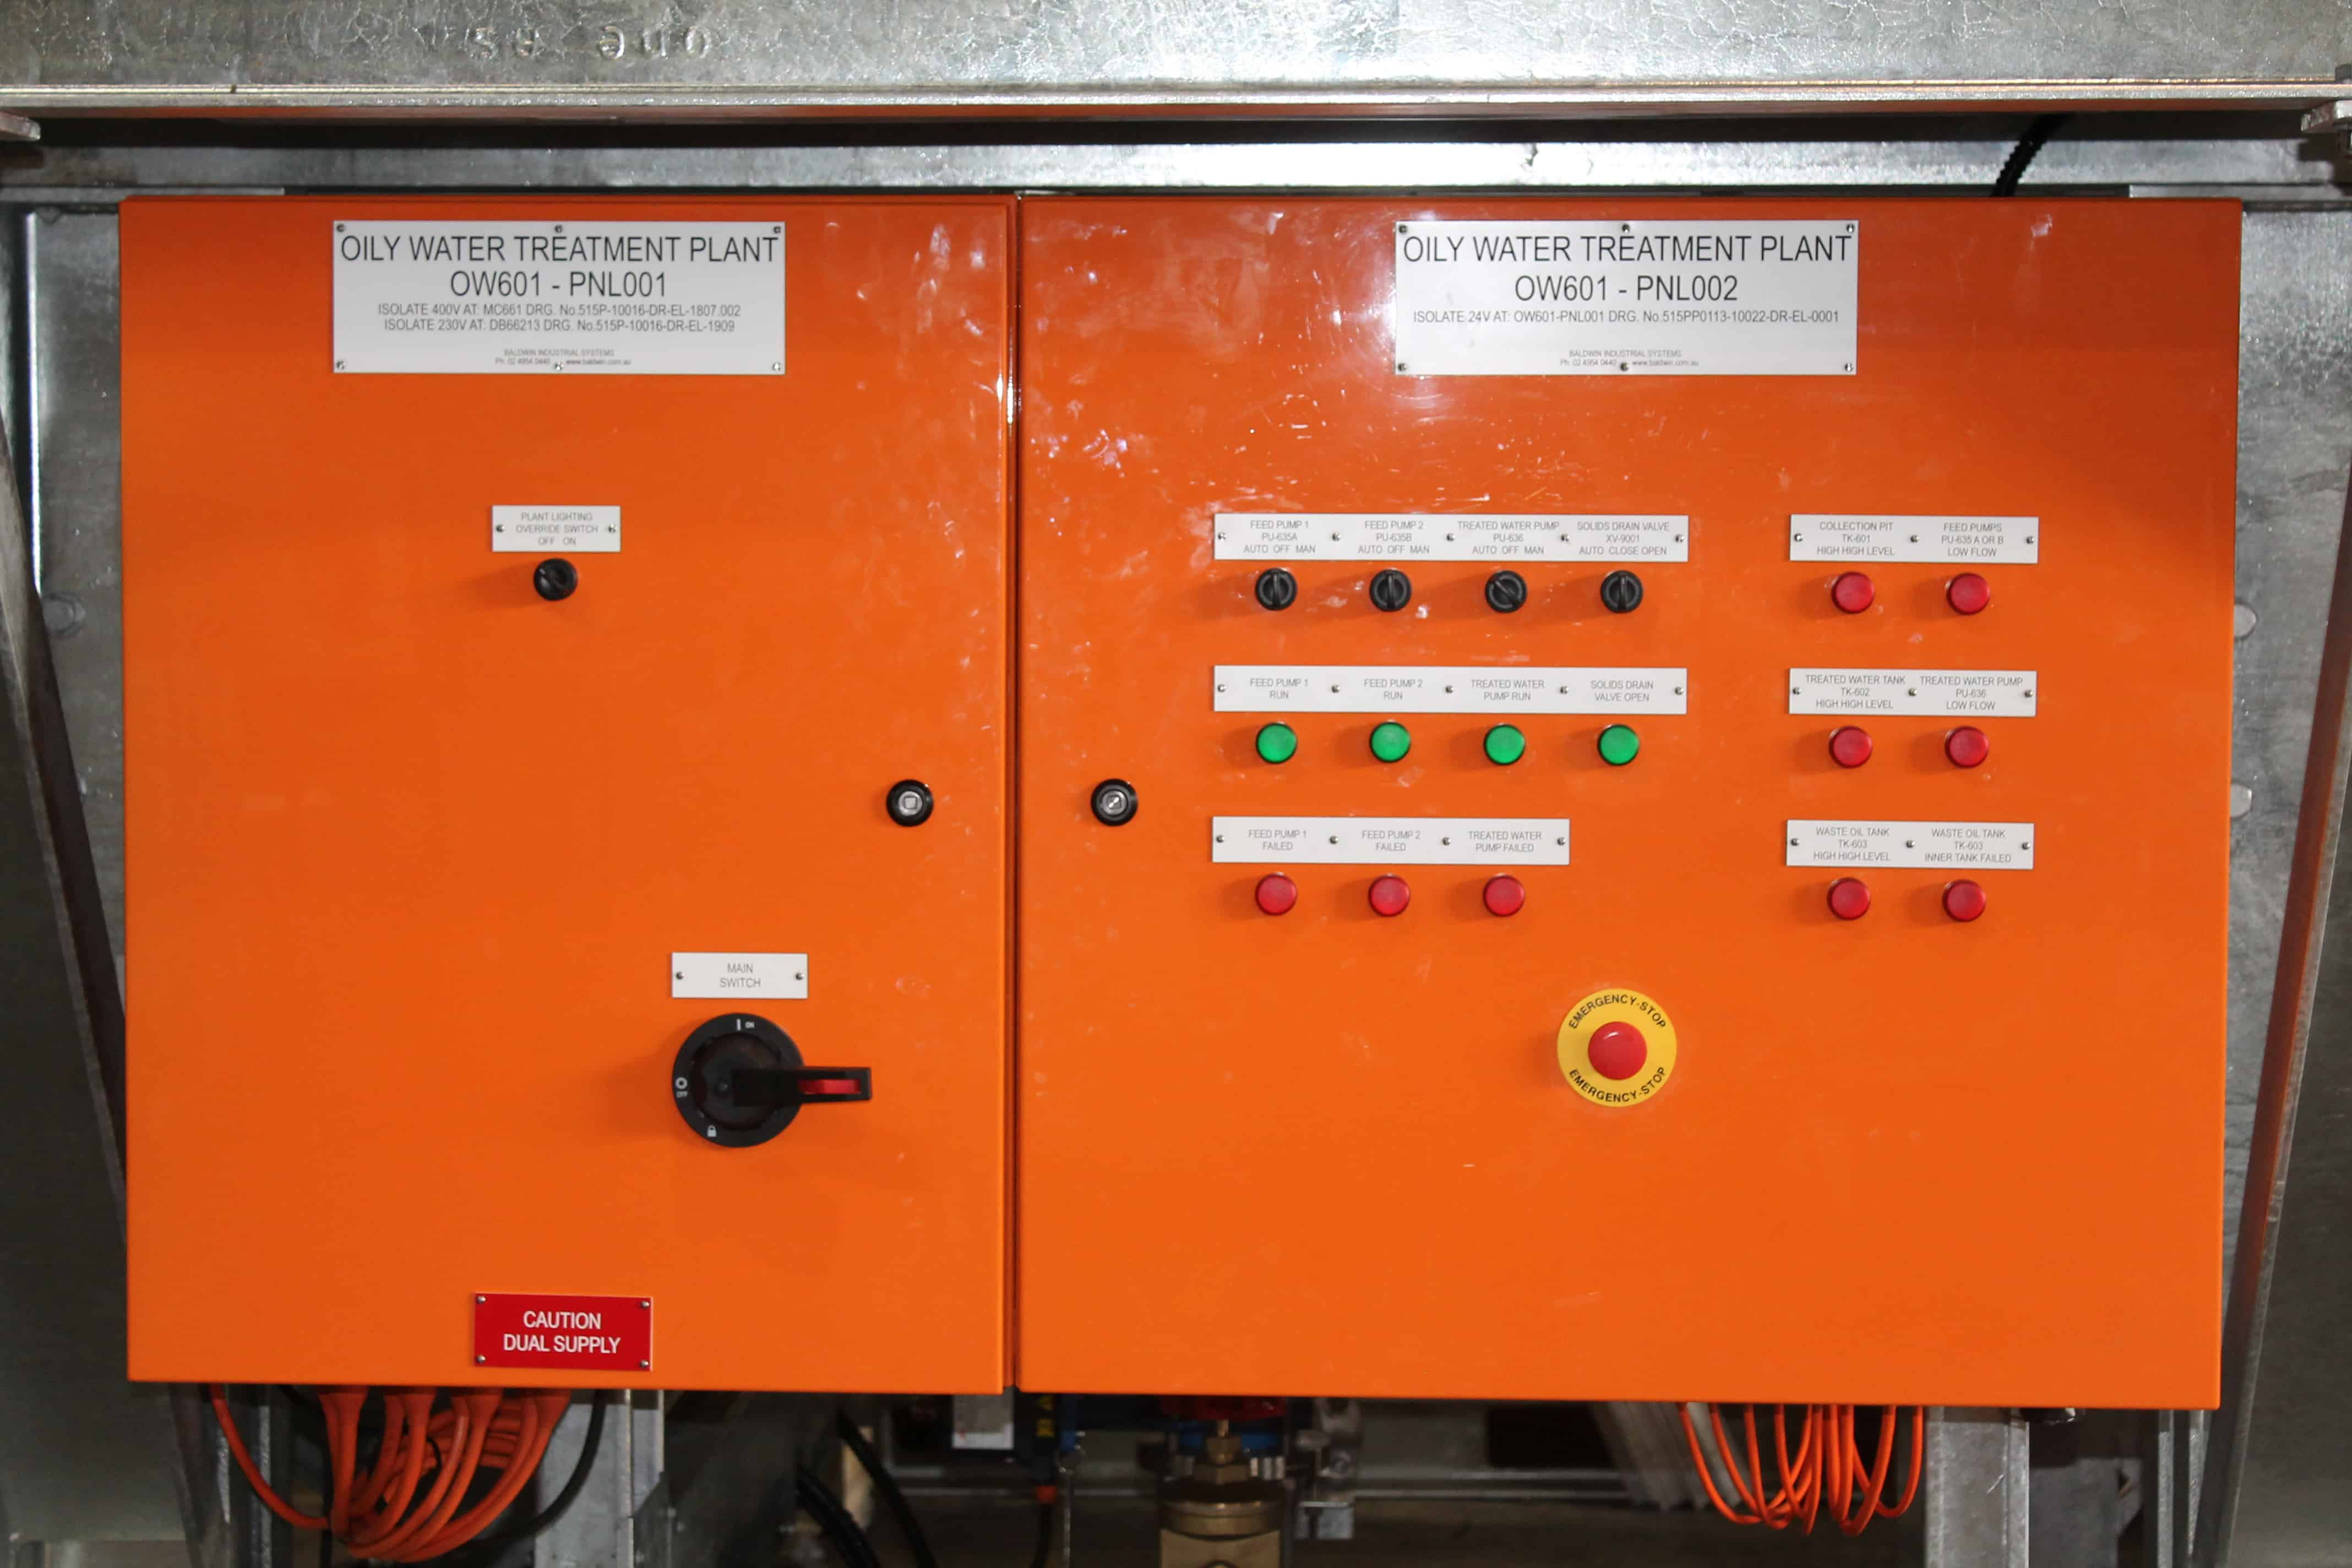 Stand mounted control panel for wastewater treatment